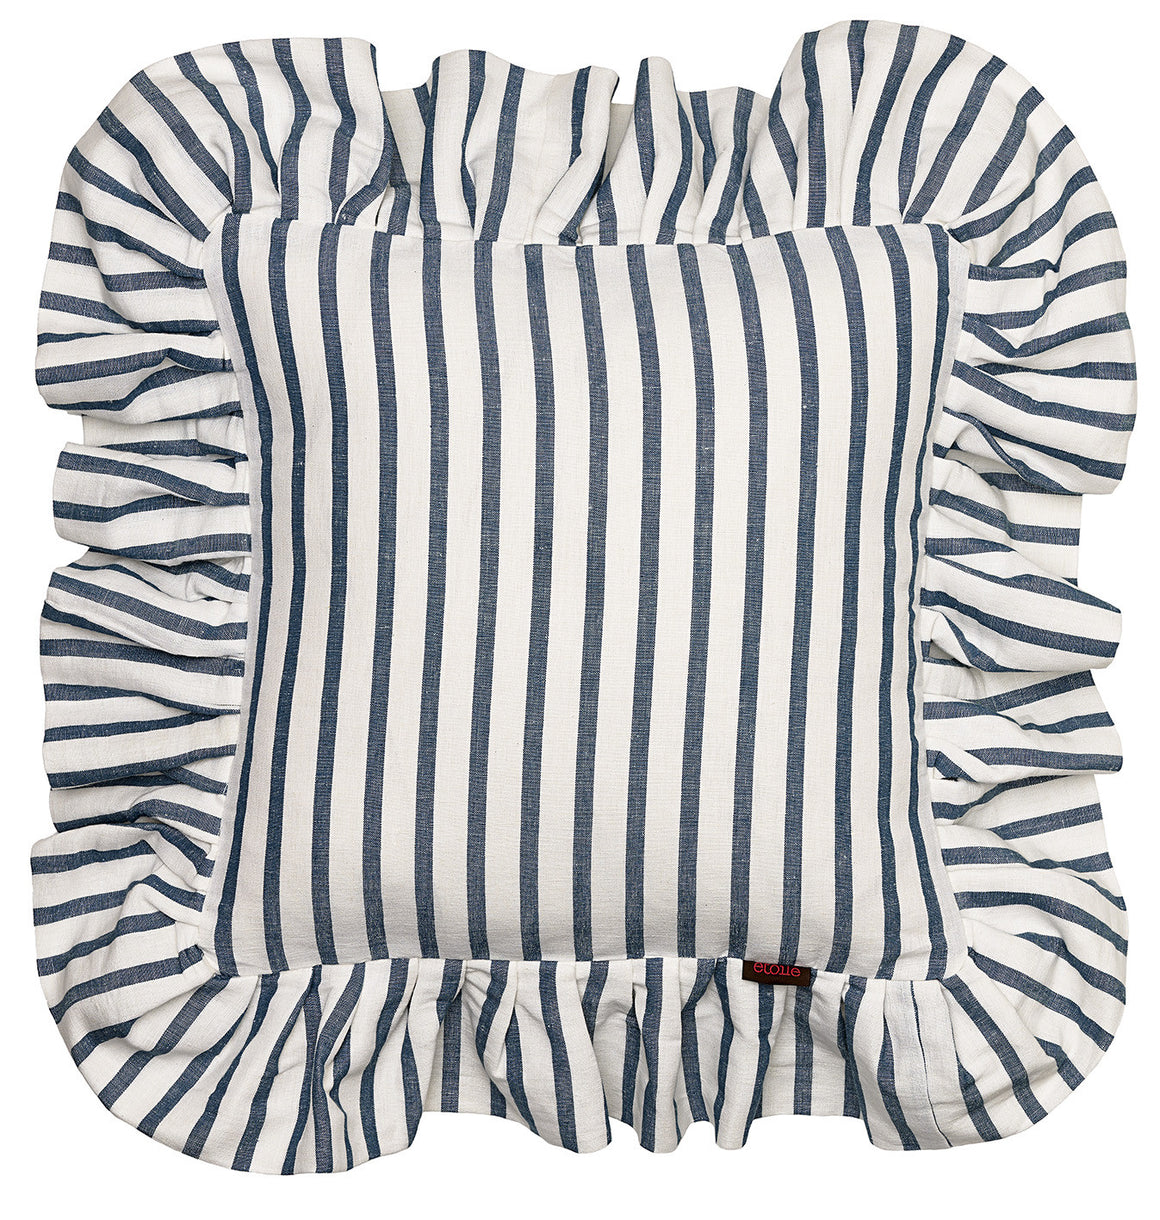 "Autumn Ticking Stripe Cotton Linen Ruffle Decorative Throw Pillow - Petrol Blue 18x18"" 45x45cm"